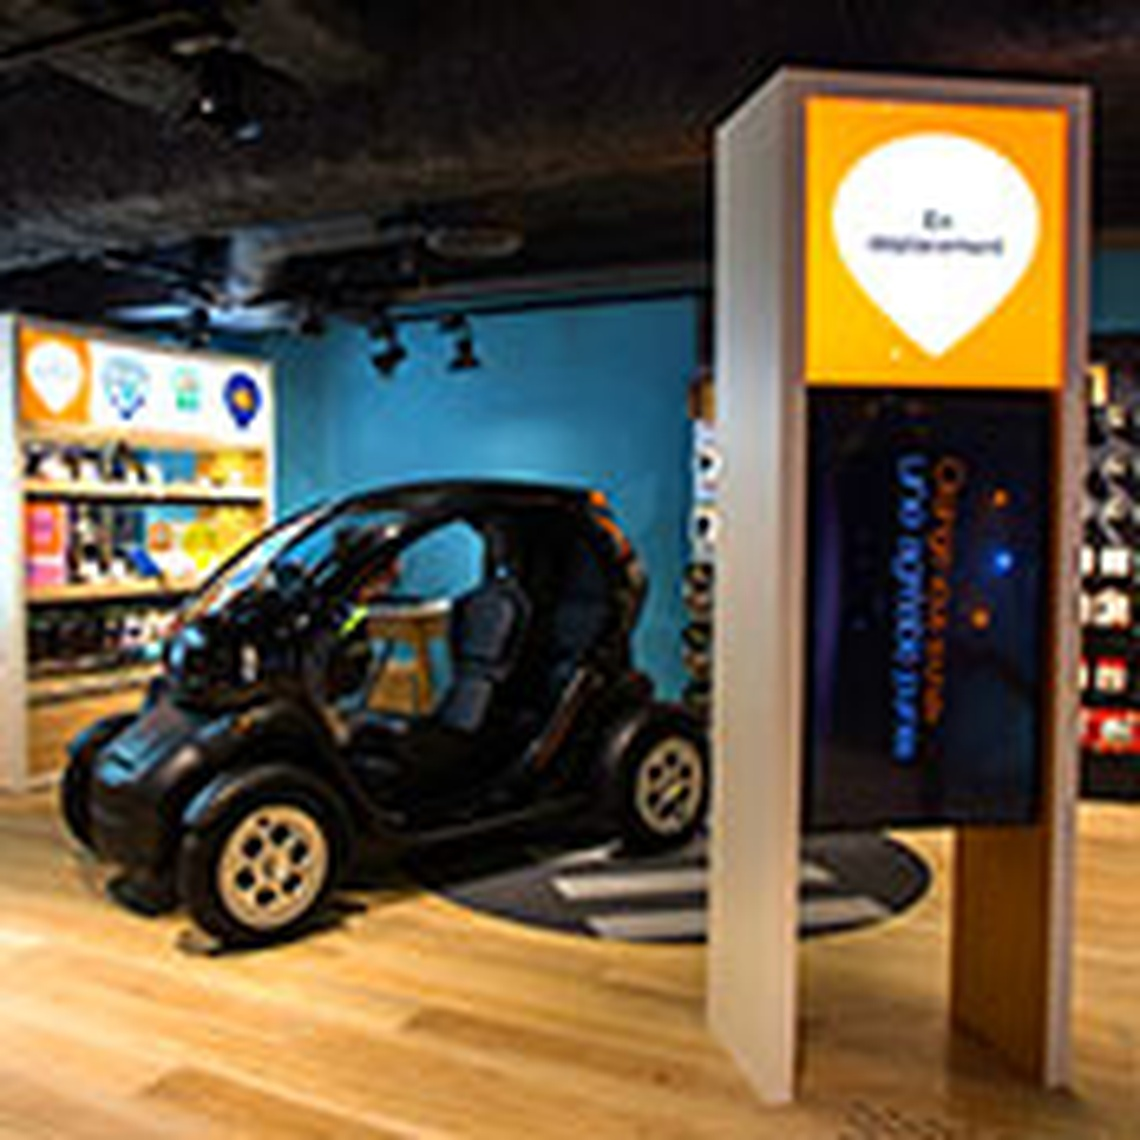 "Boutique Orange Gdt Centre Co Carrefour - Venette - L'espace ""En déplacement"""